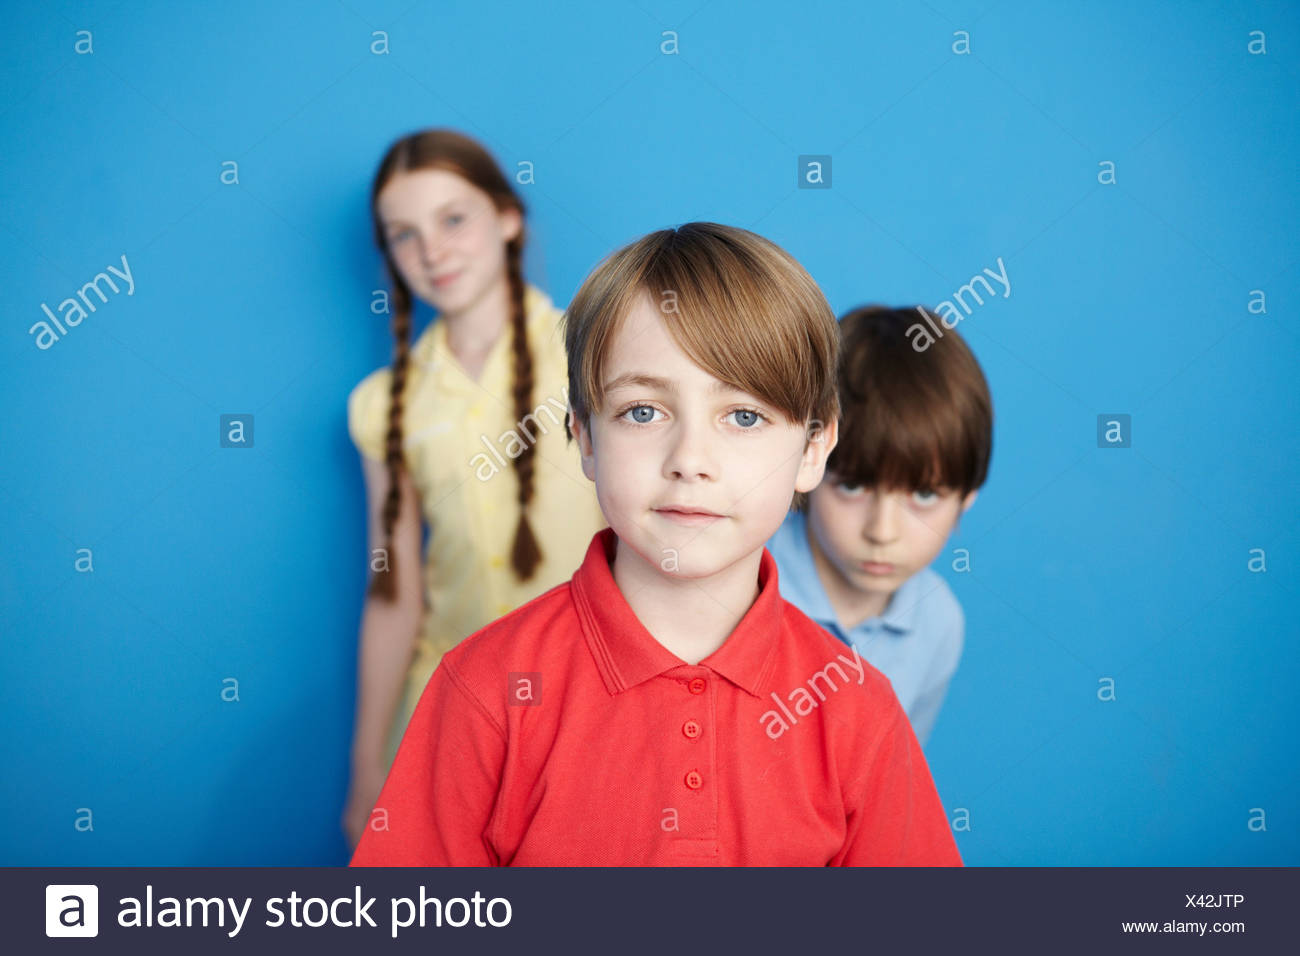 Portrait of three children looking at camera, blue background - Stock Image